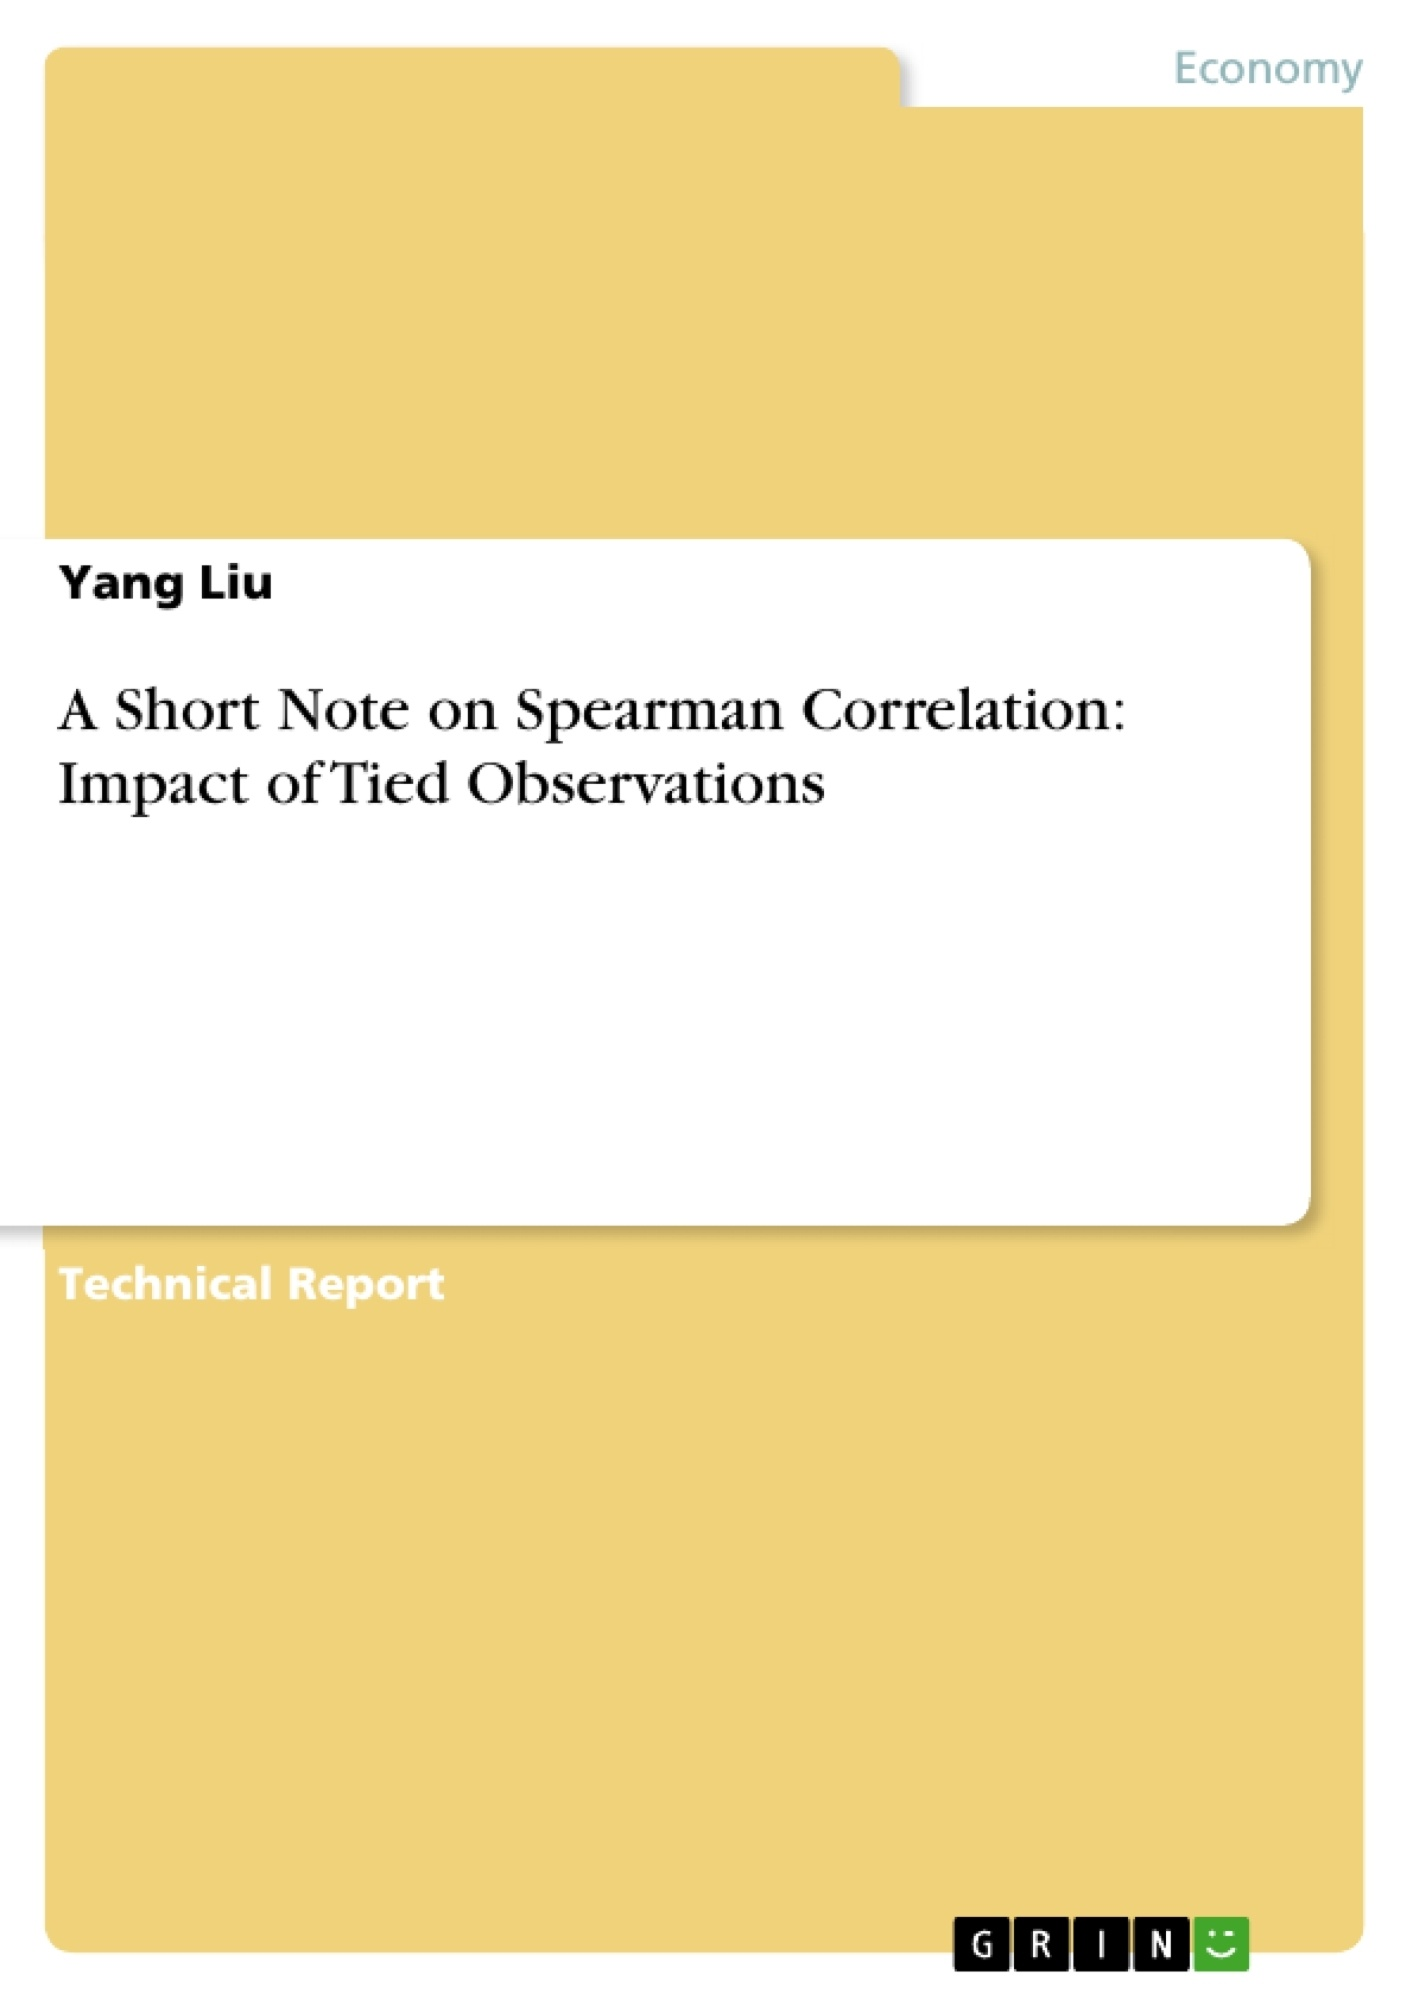 Title: A Short Note on Spearman Correlation: Impact of Tied Observations